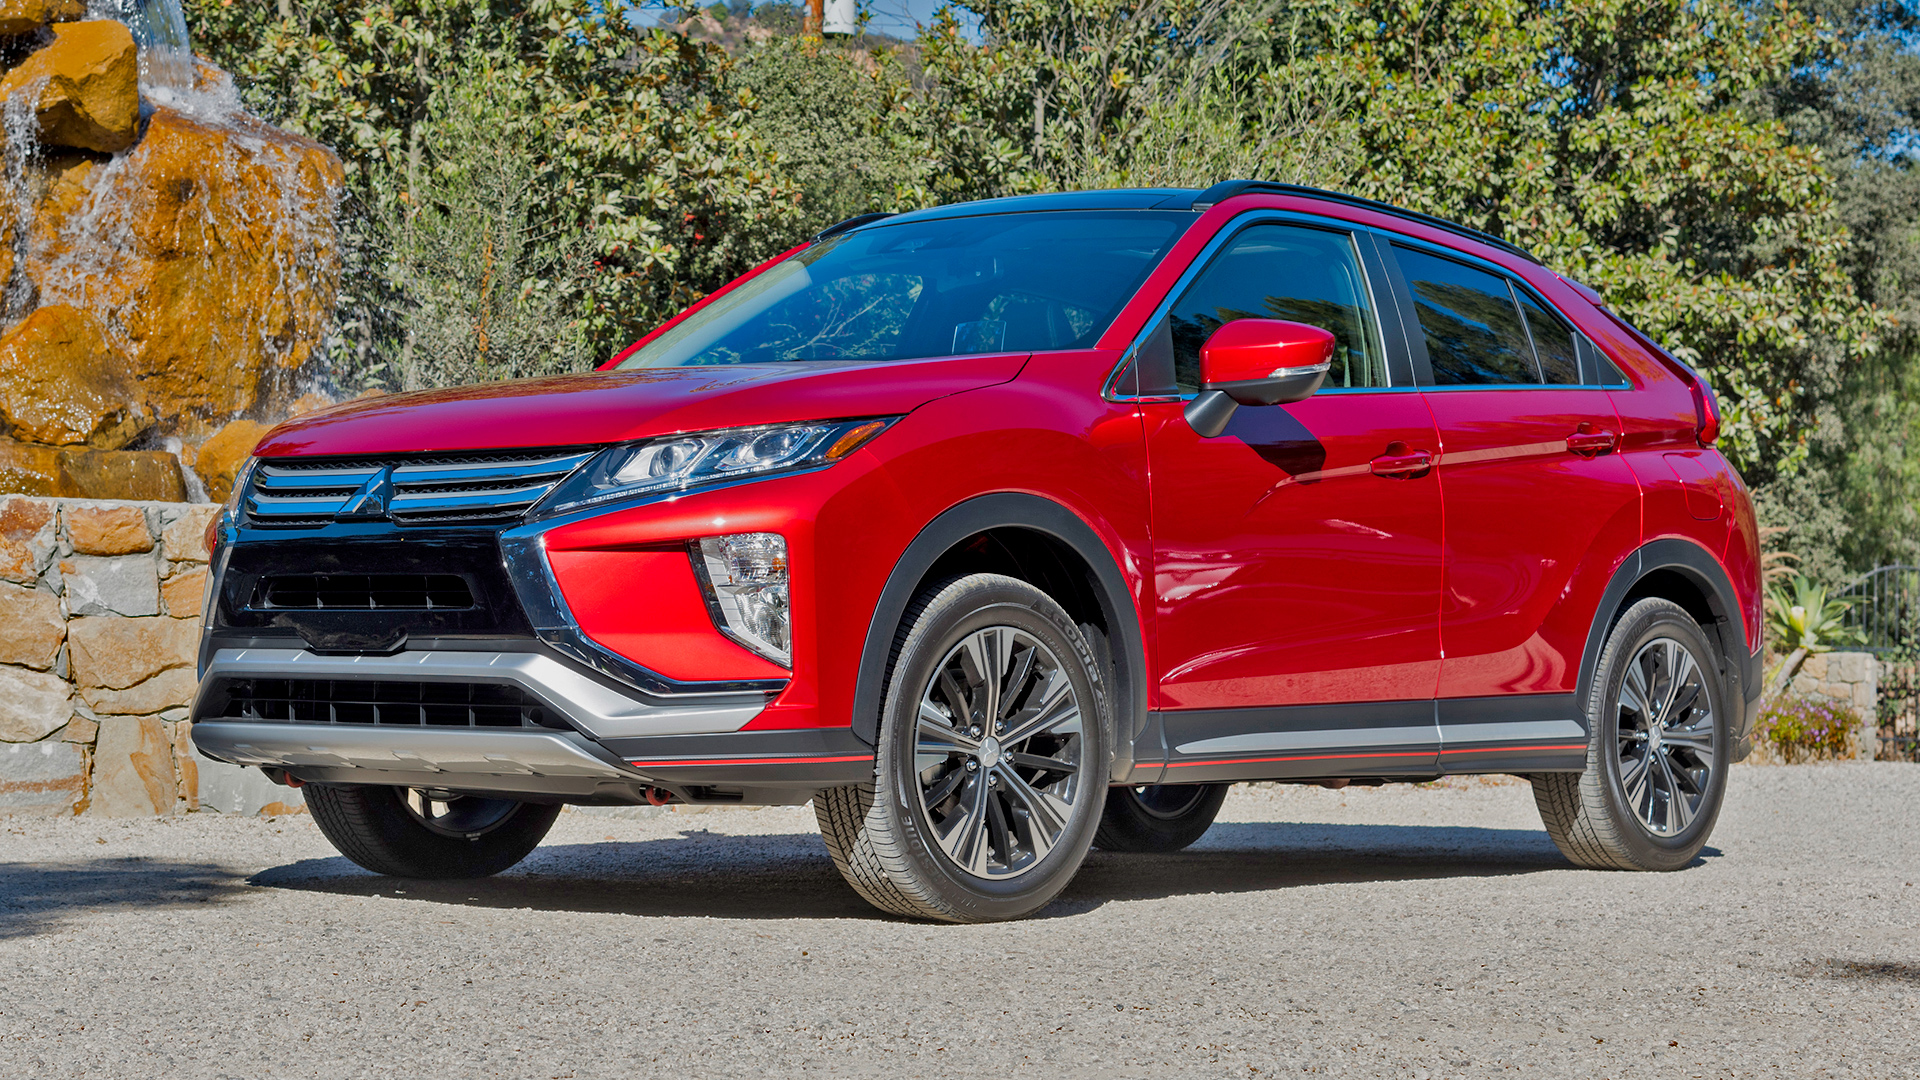 The Eclipse Cross, which isn't so bad the more you look at it